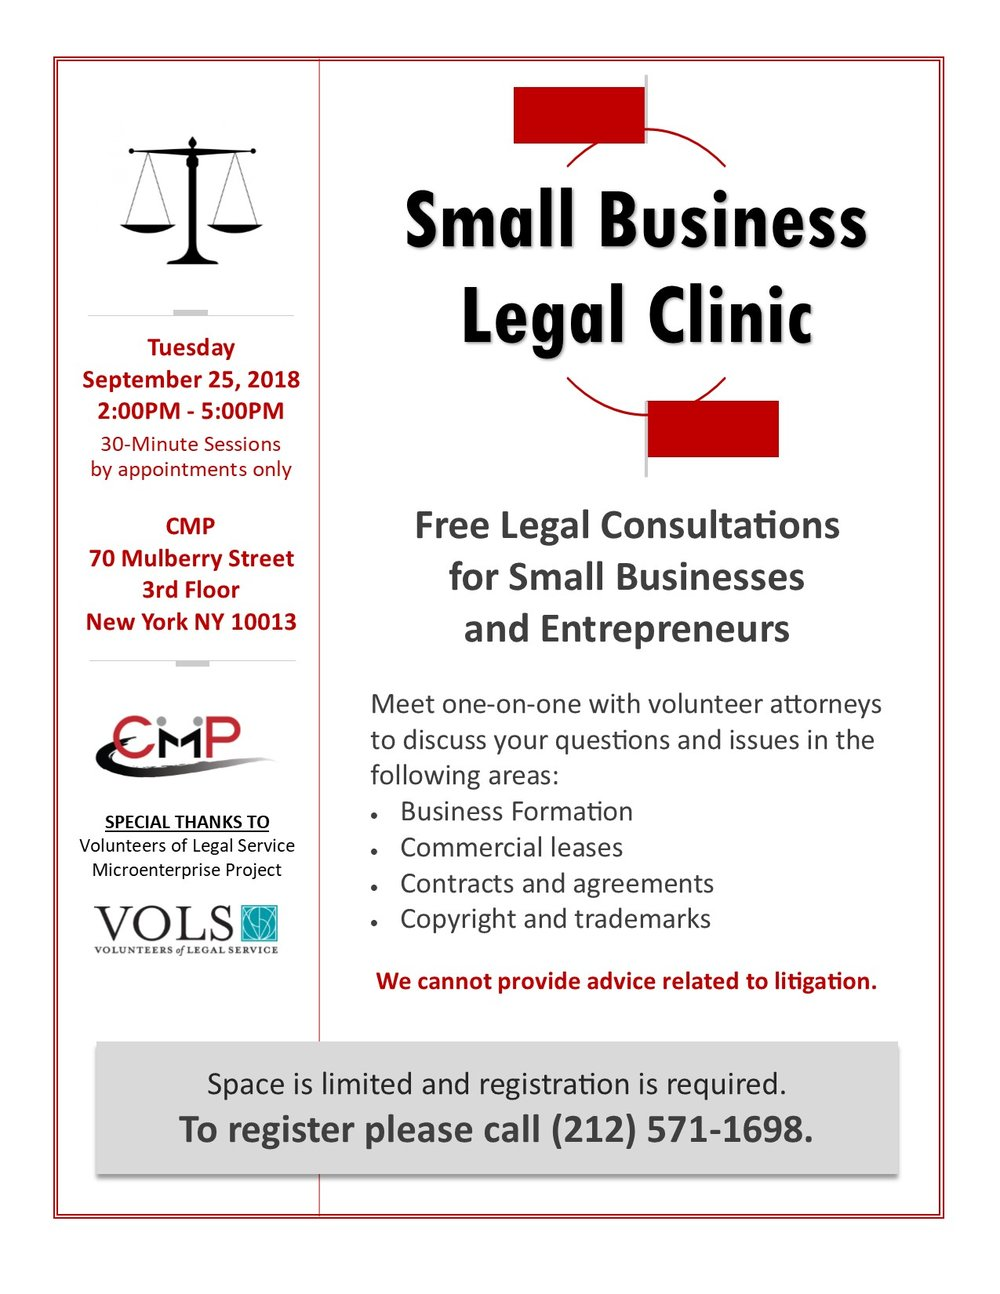 Small Business Legal Clinic - Legal documents for small business